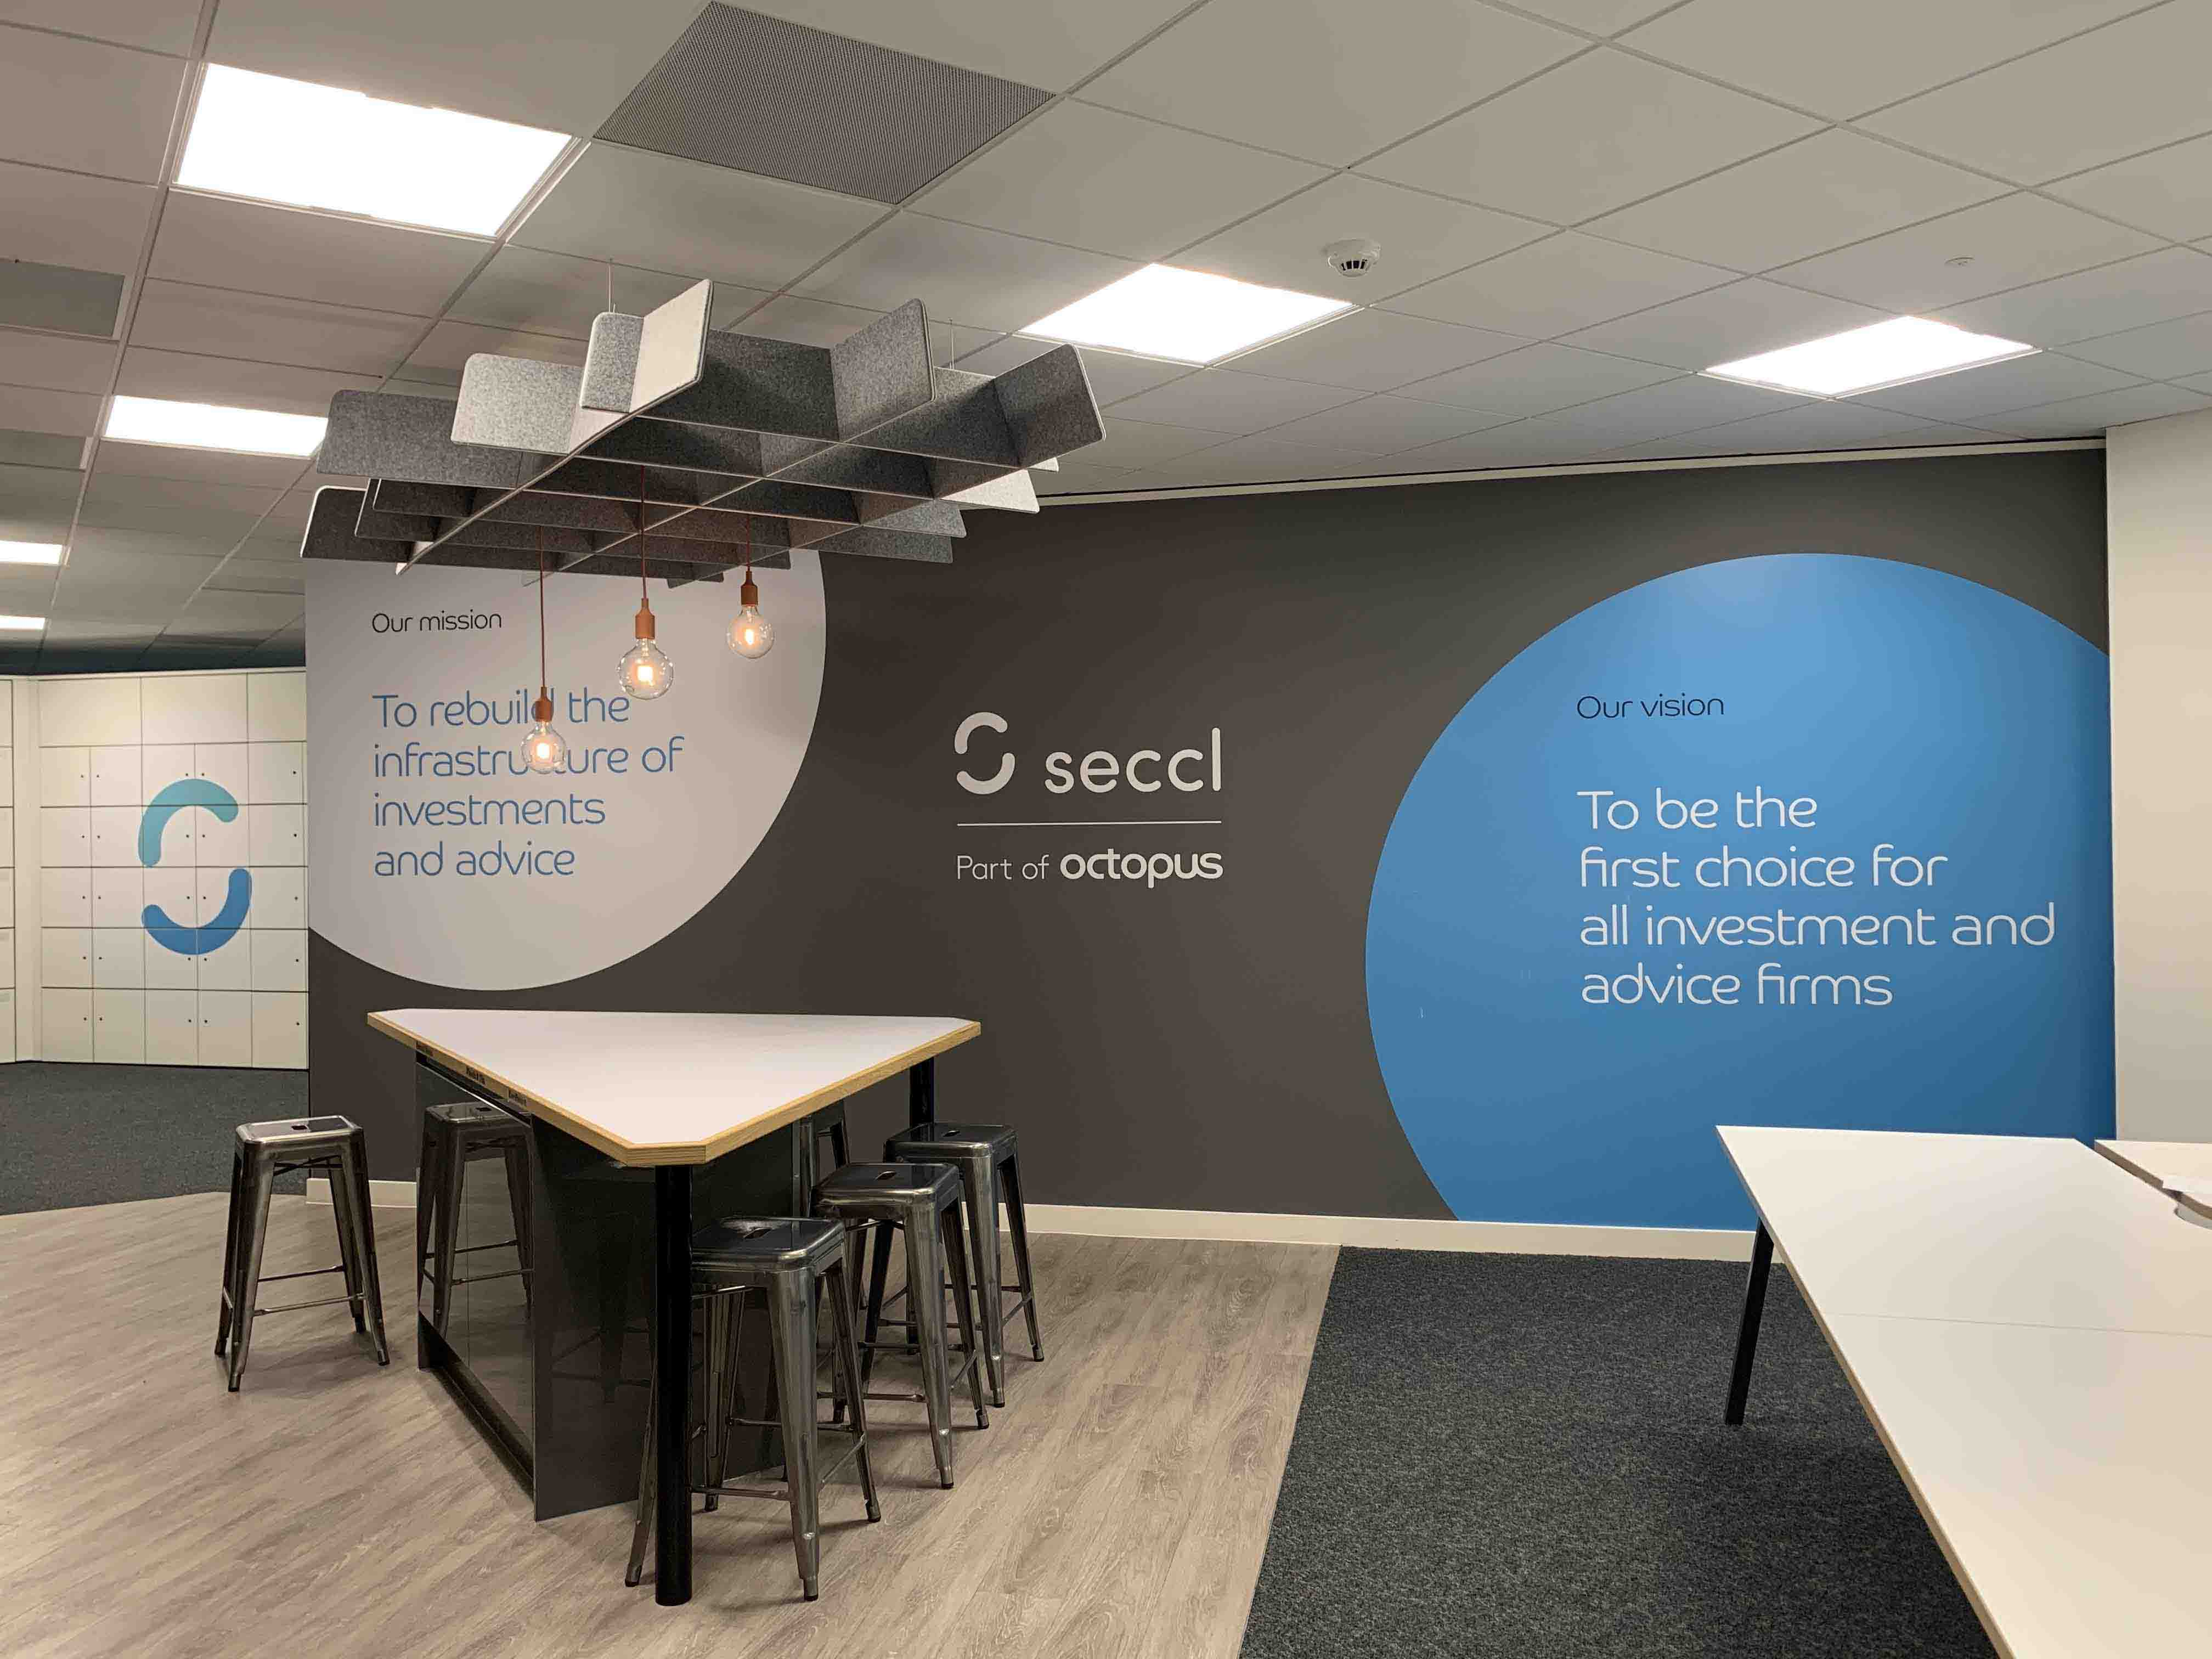 Seccl's brand new office at 20 Manvers Street